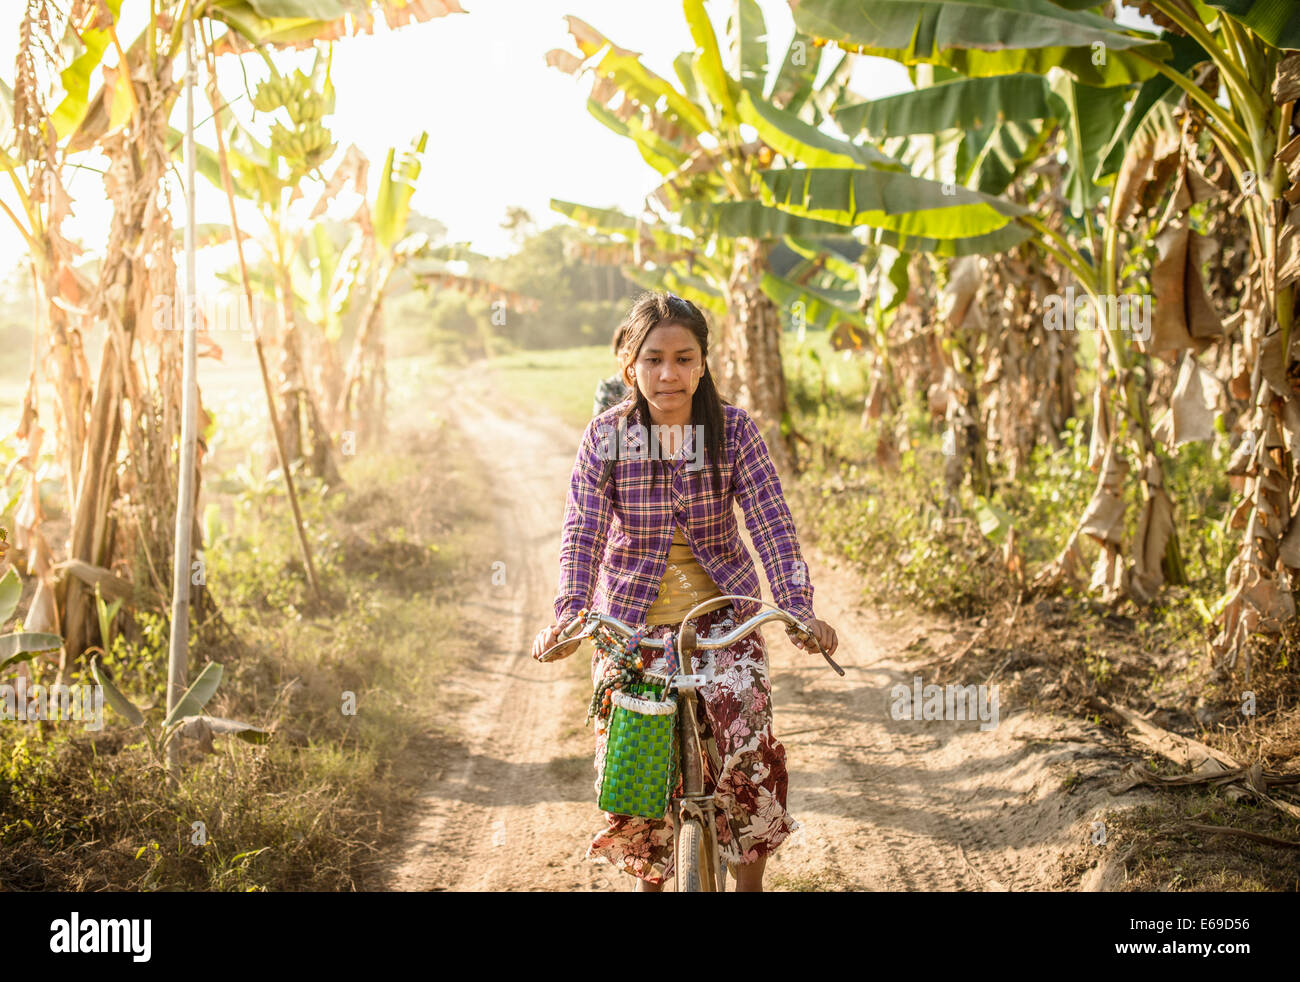 Asian woman riding bicycle on rural road Stock Photo